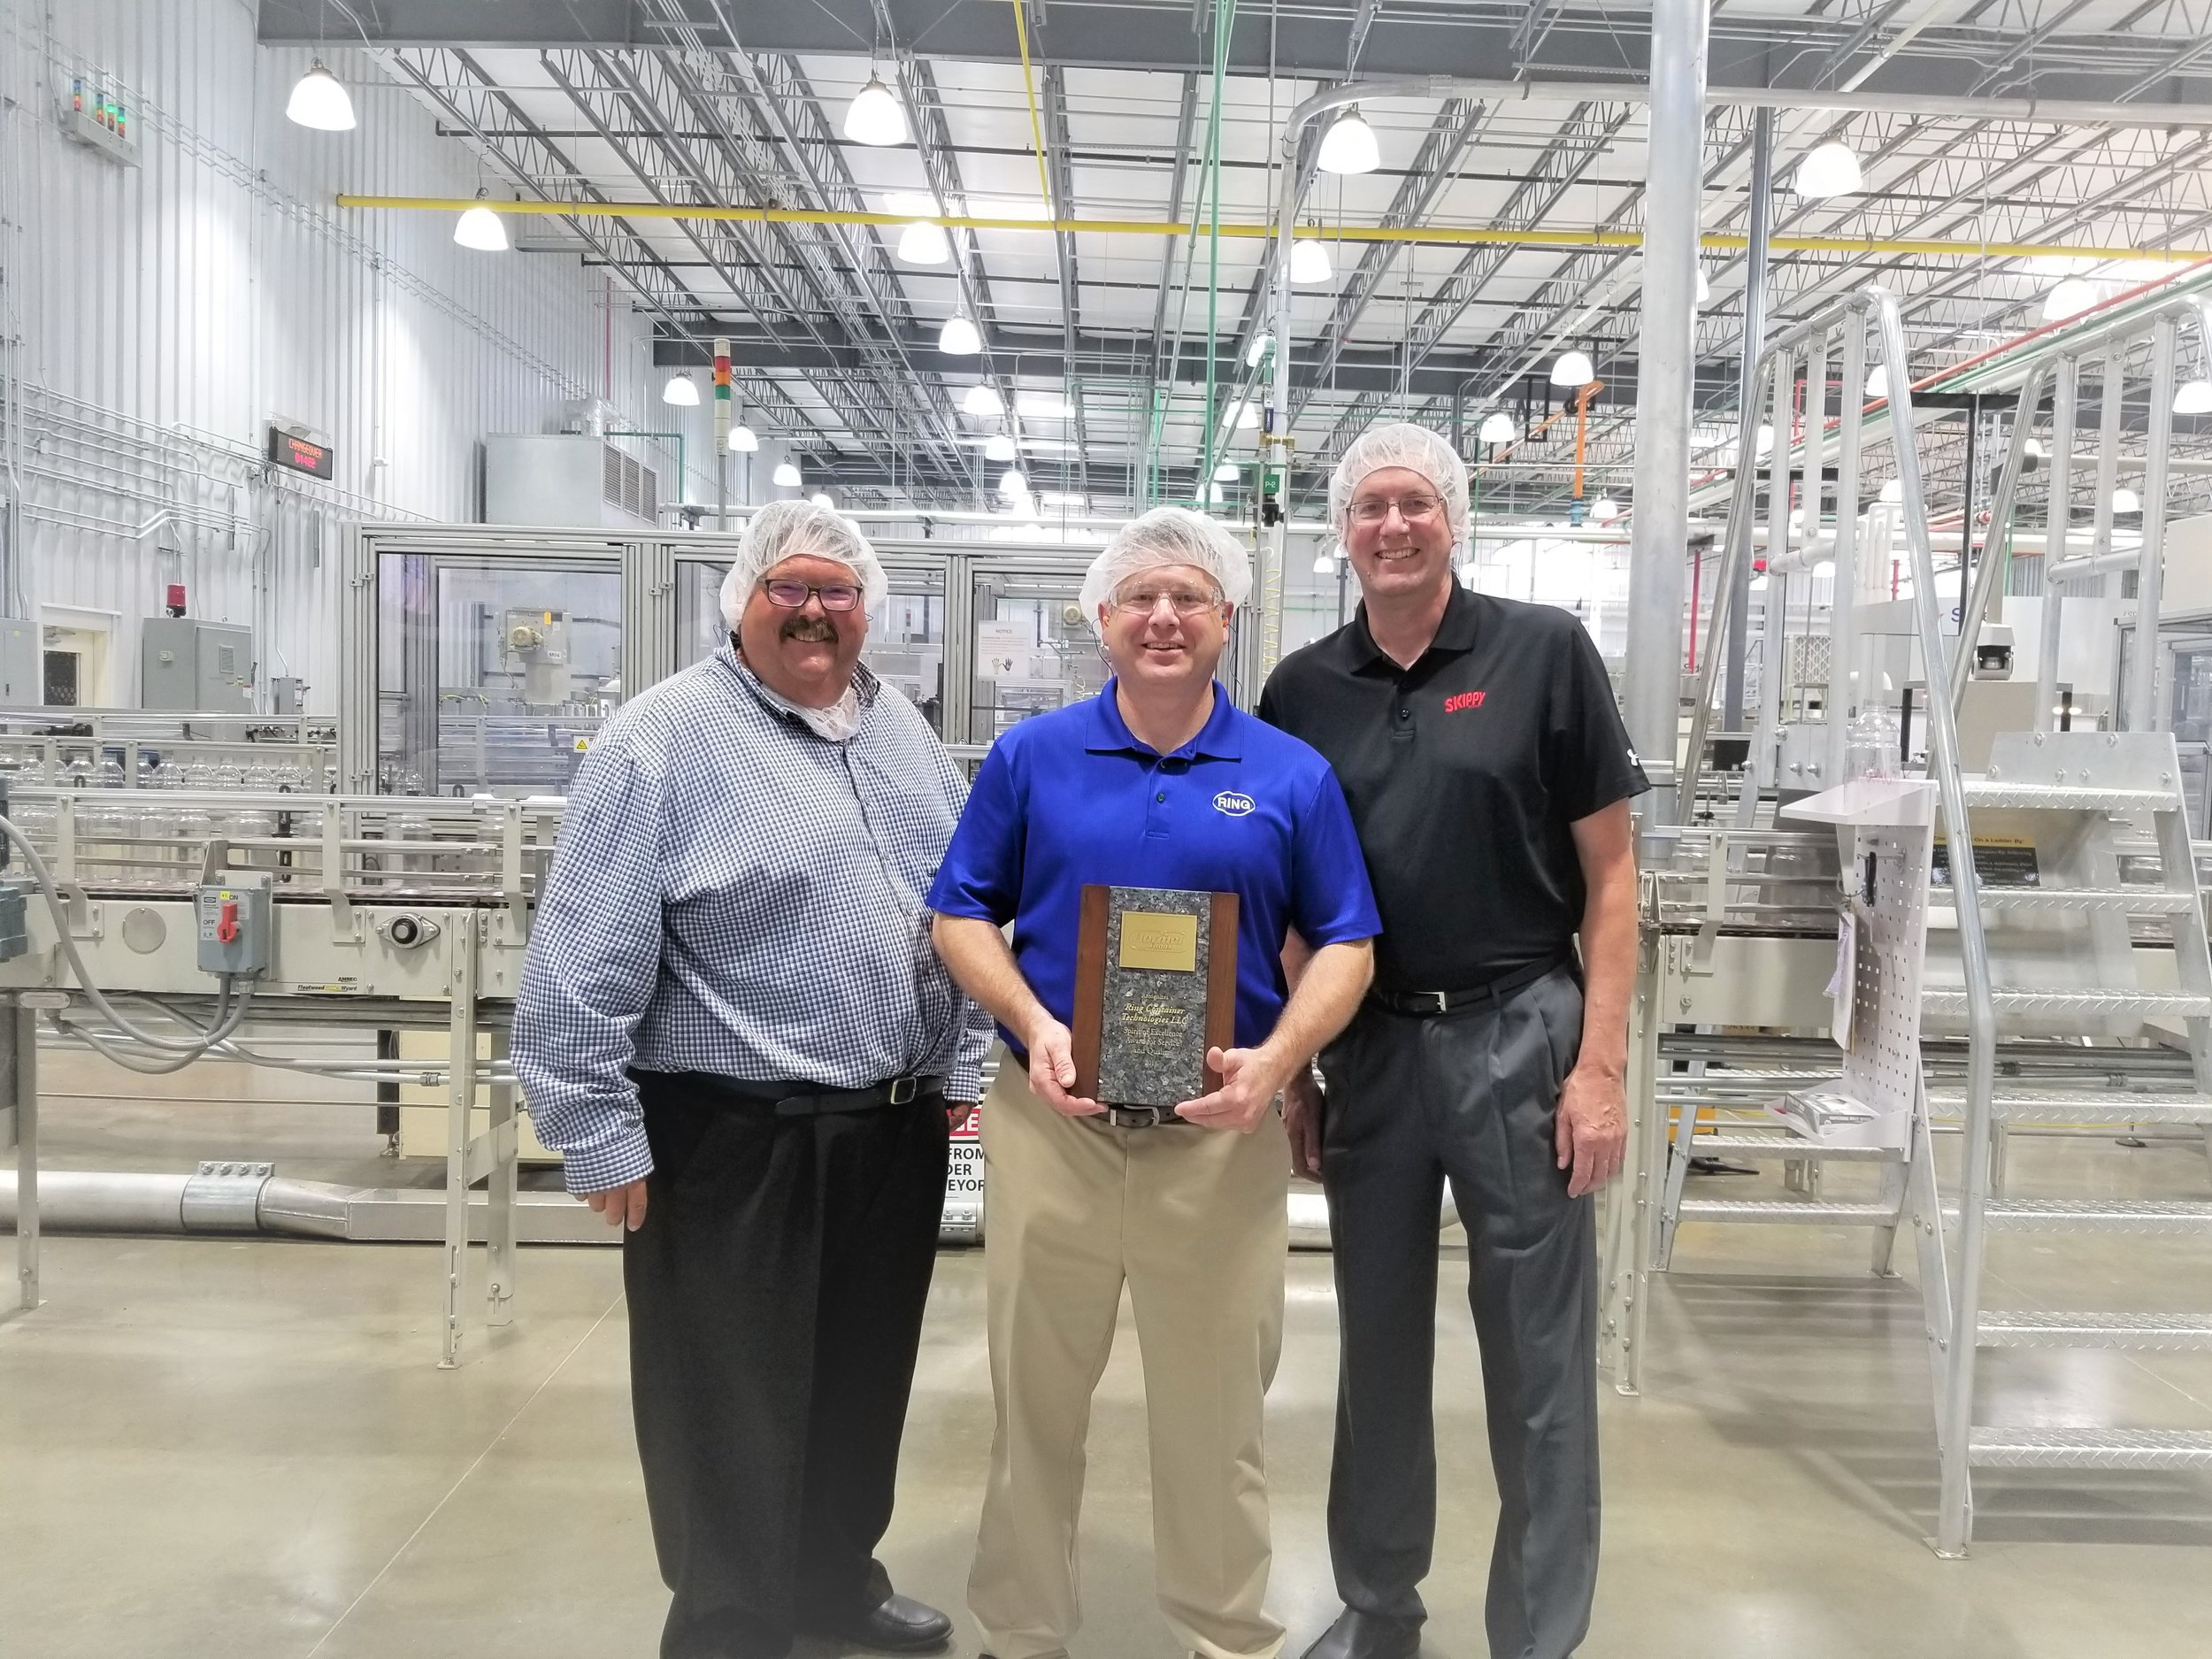 Bill Hacker, Hormel corporate buyer, Ray Lovelace, Ring Little Rock plant manager, Roger Vos, Skippy Plant Manager